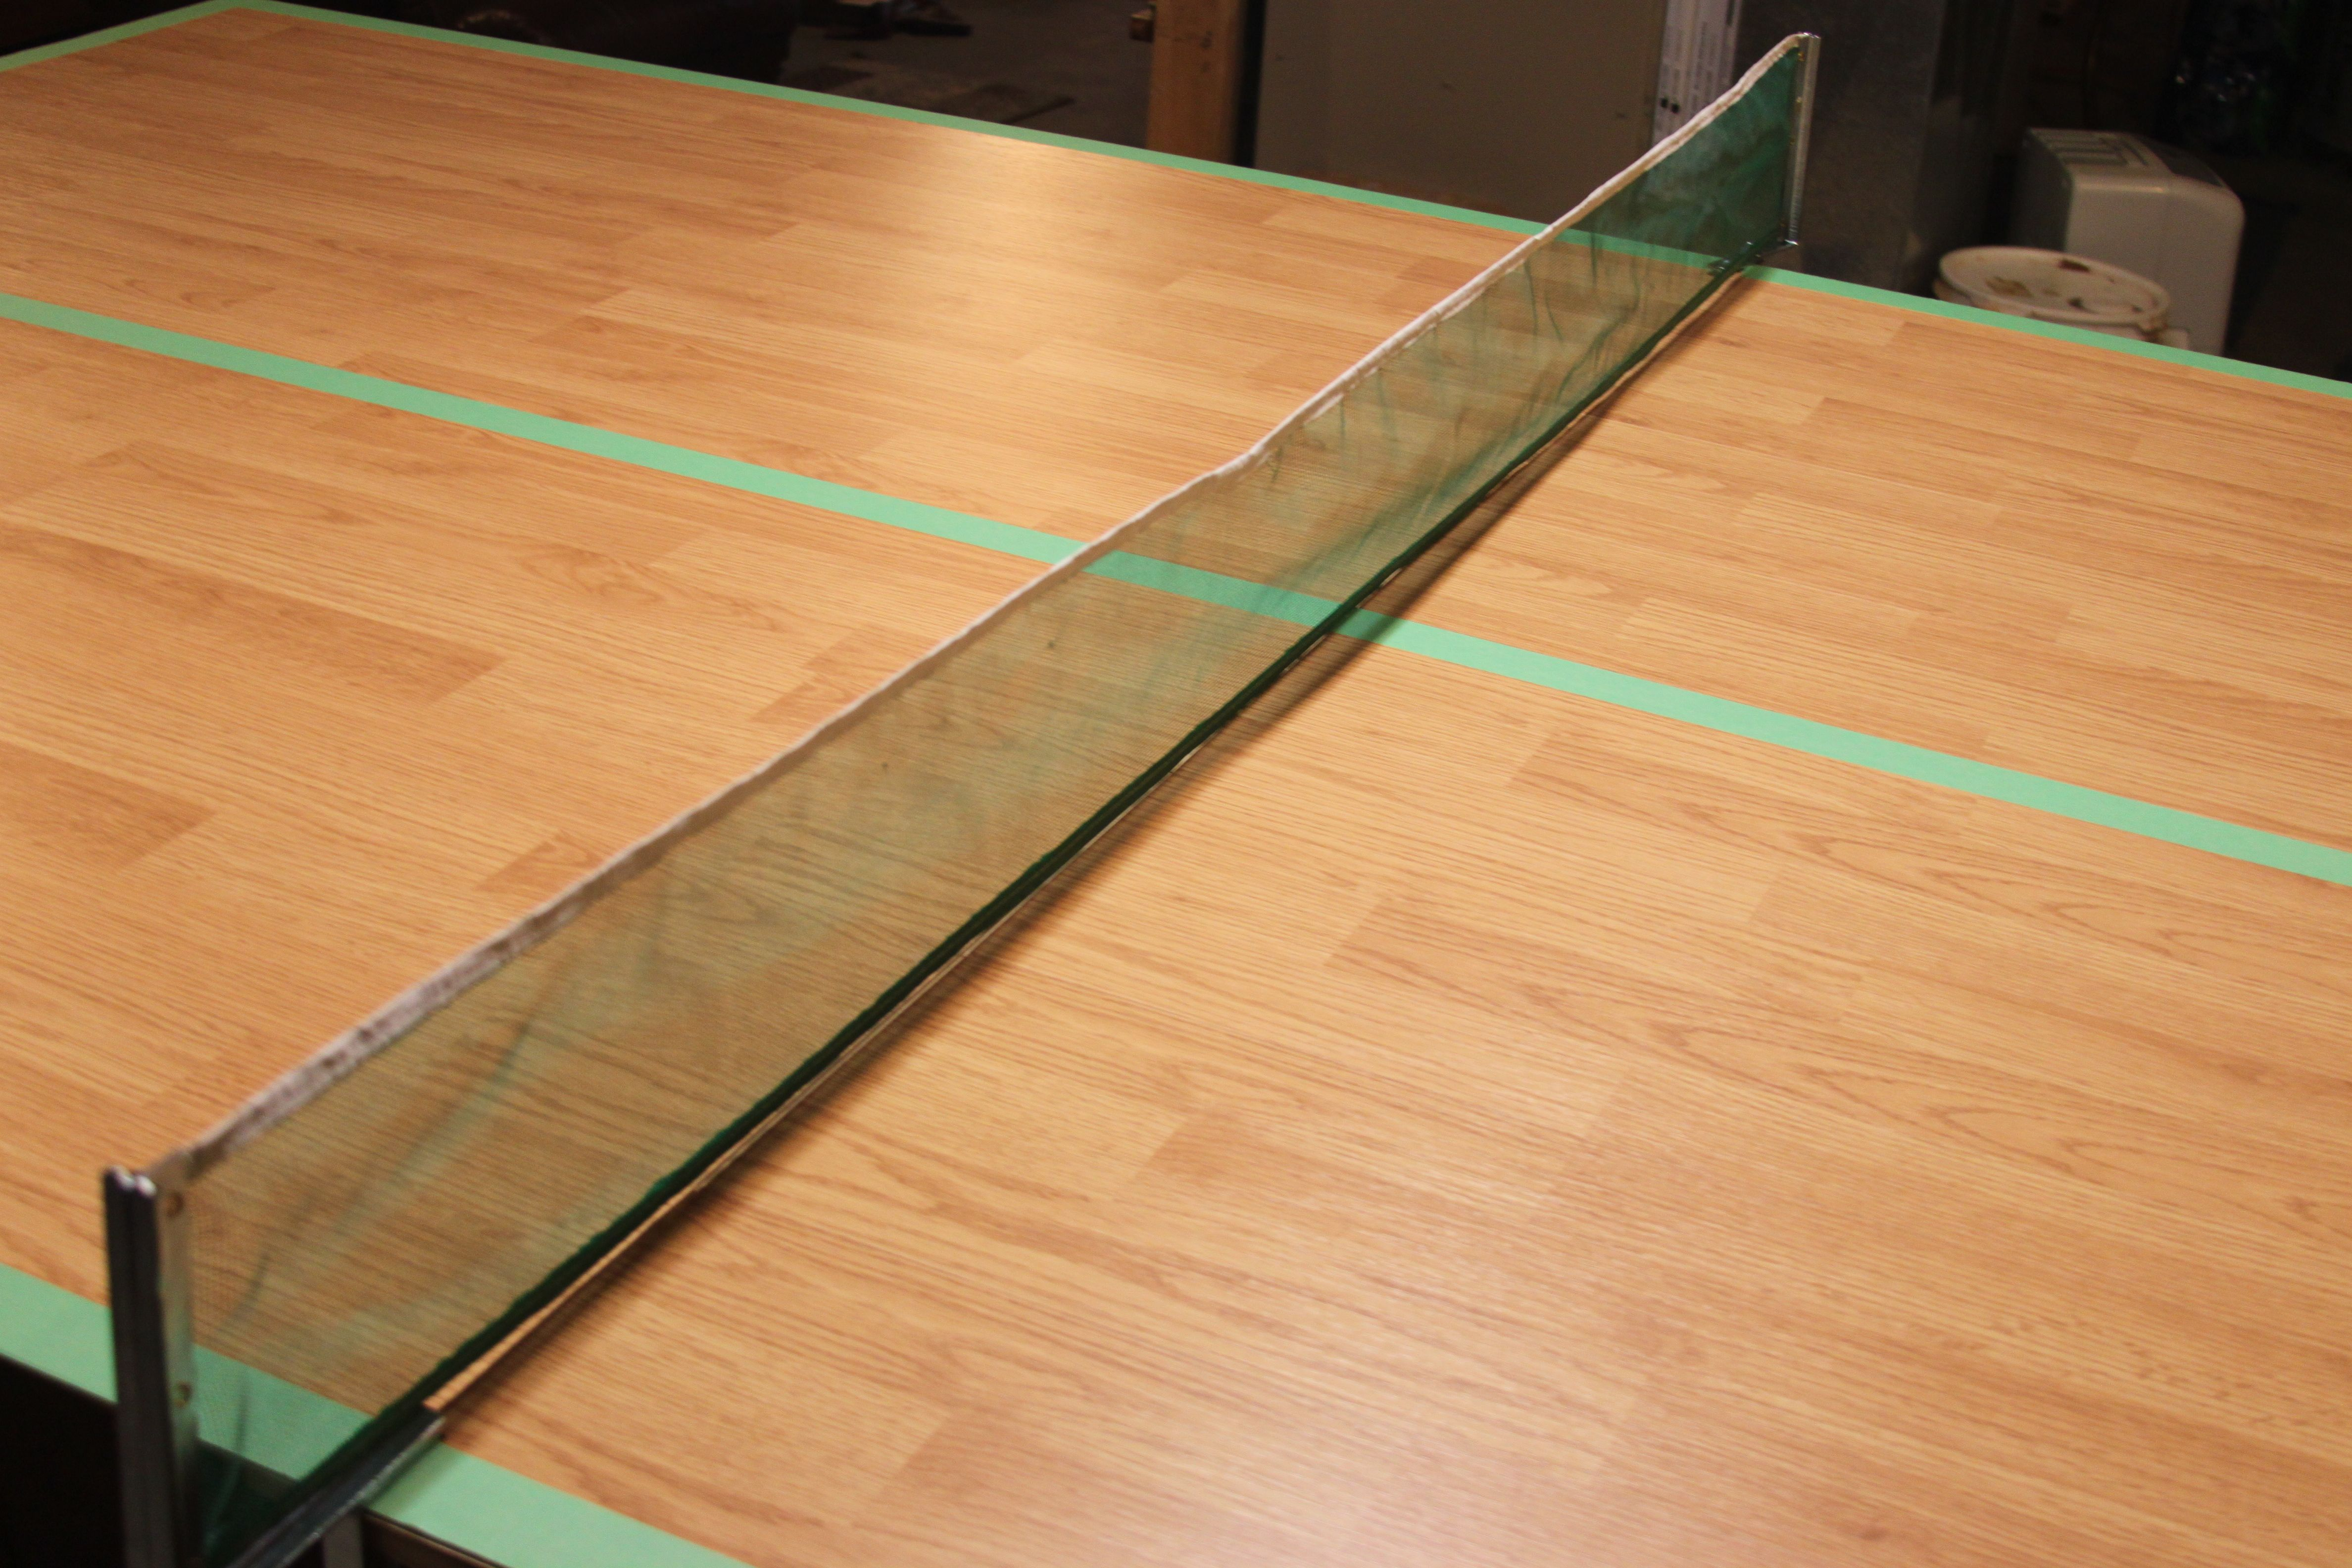 Click Laminate Flooring Ping Pong Table Conversion Cover For Pool Table.  Great Way To Use